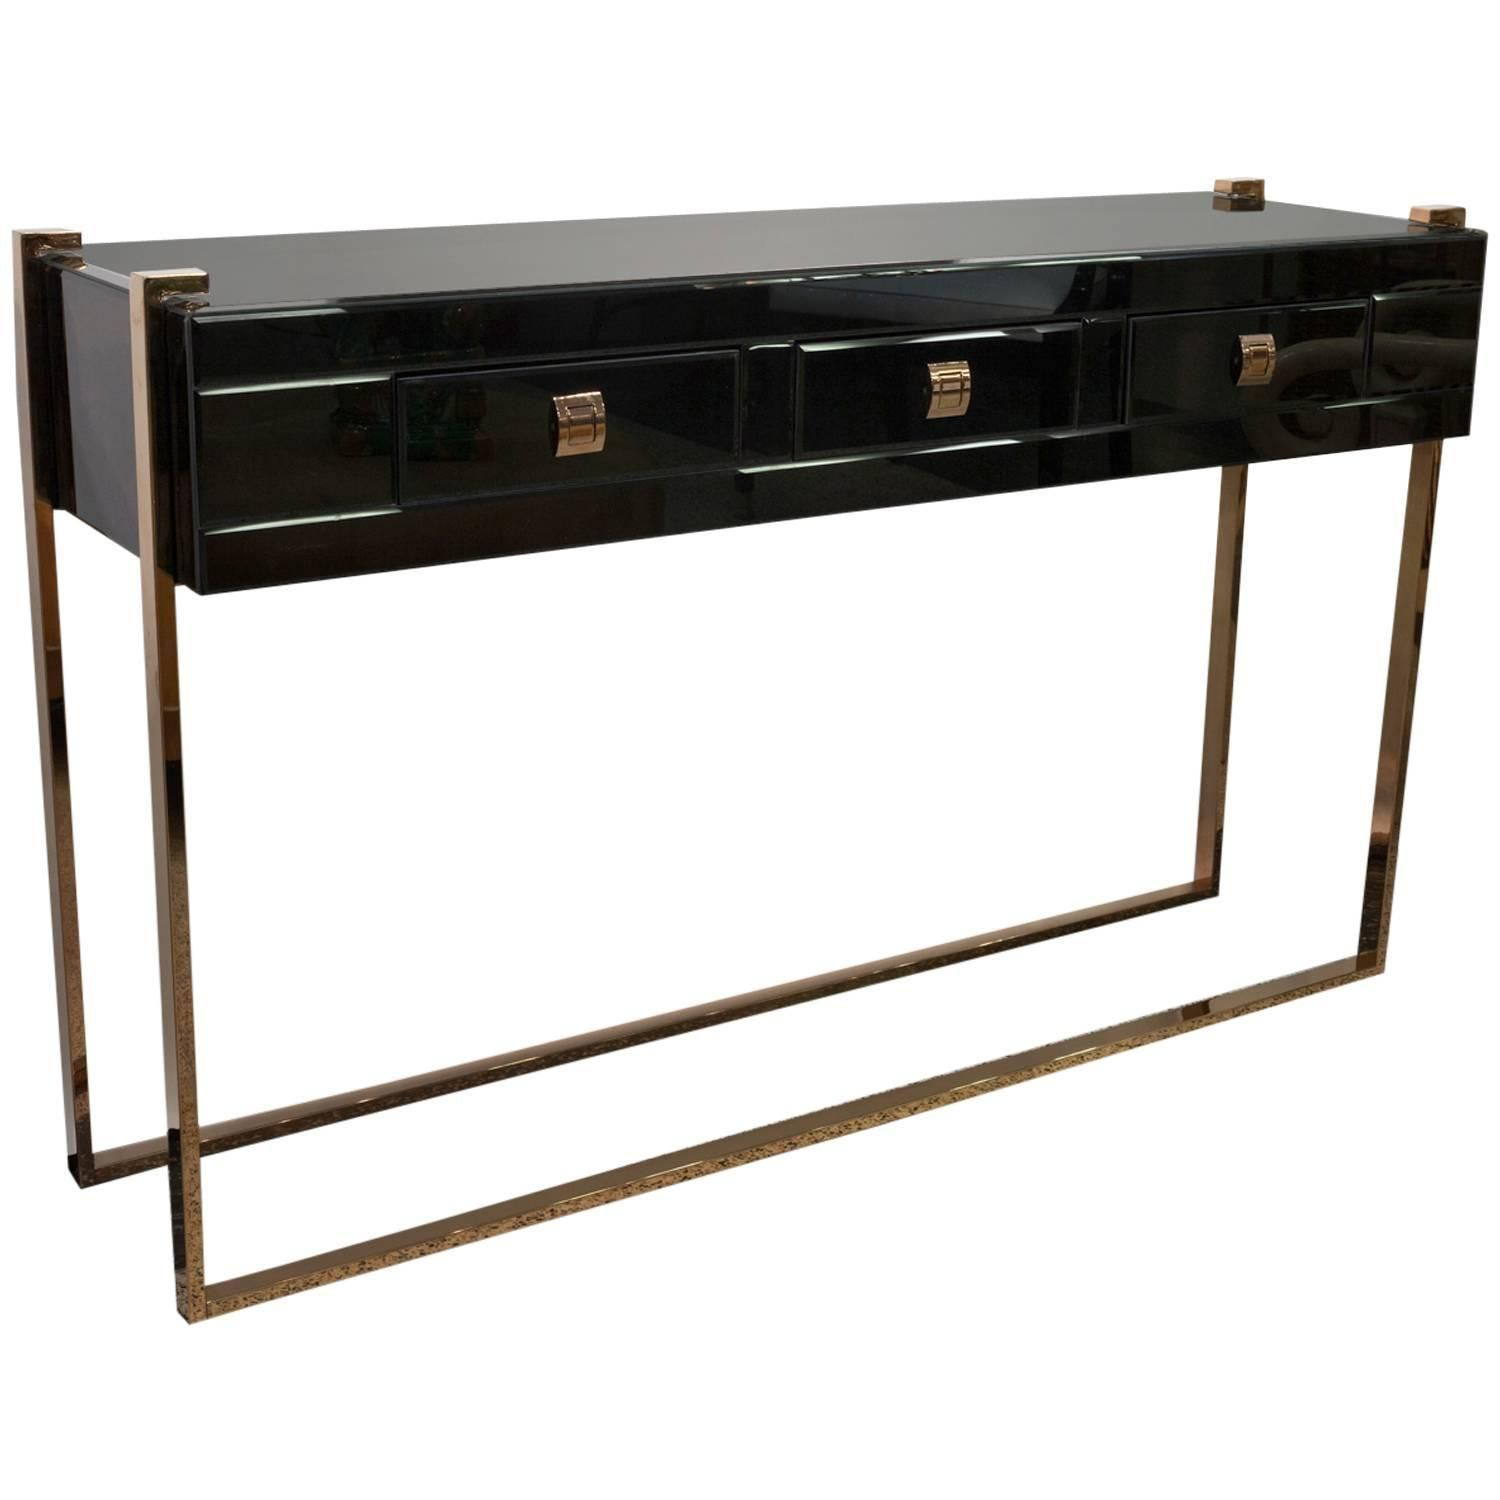 Black Glass Console Table With Brass Details, Manner Of Jacques regarding Jacque Console Tables (Image 3 of 30)